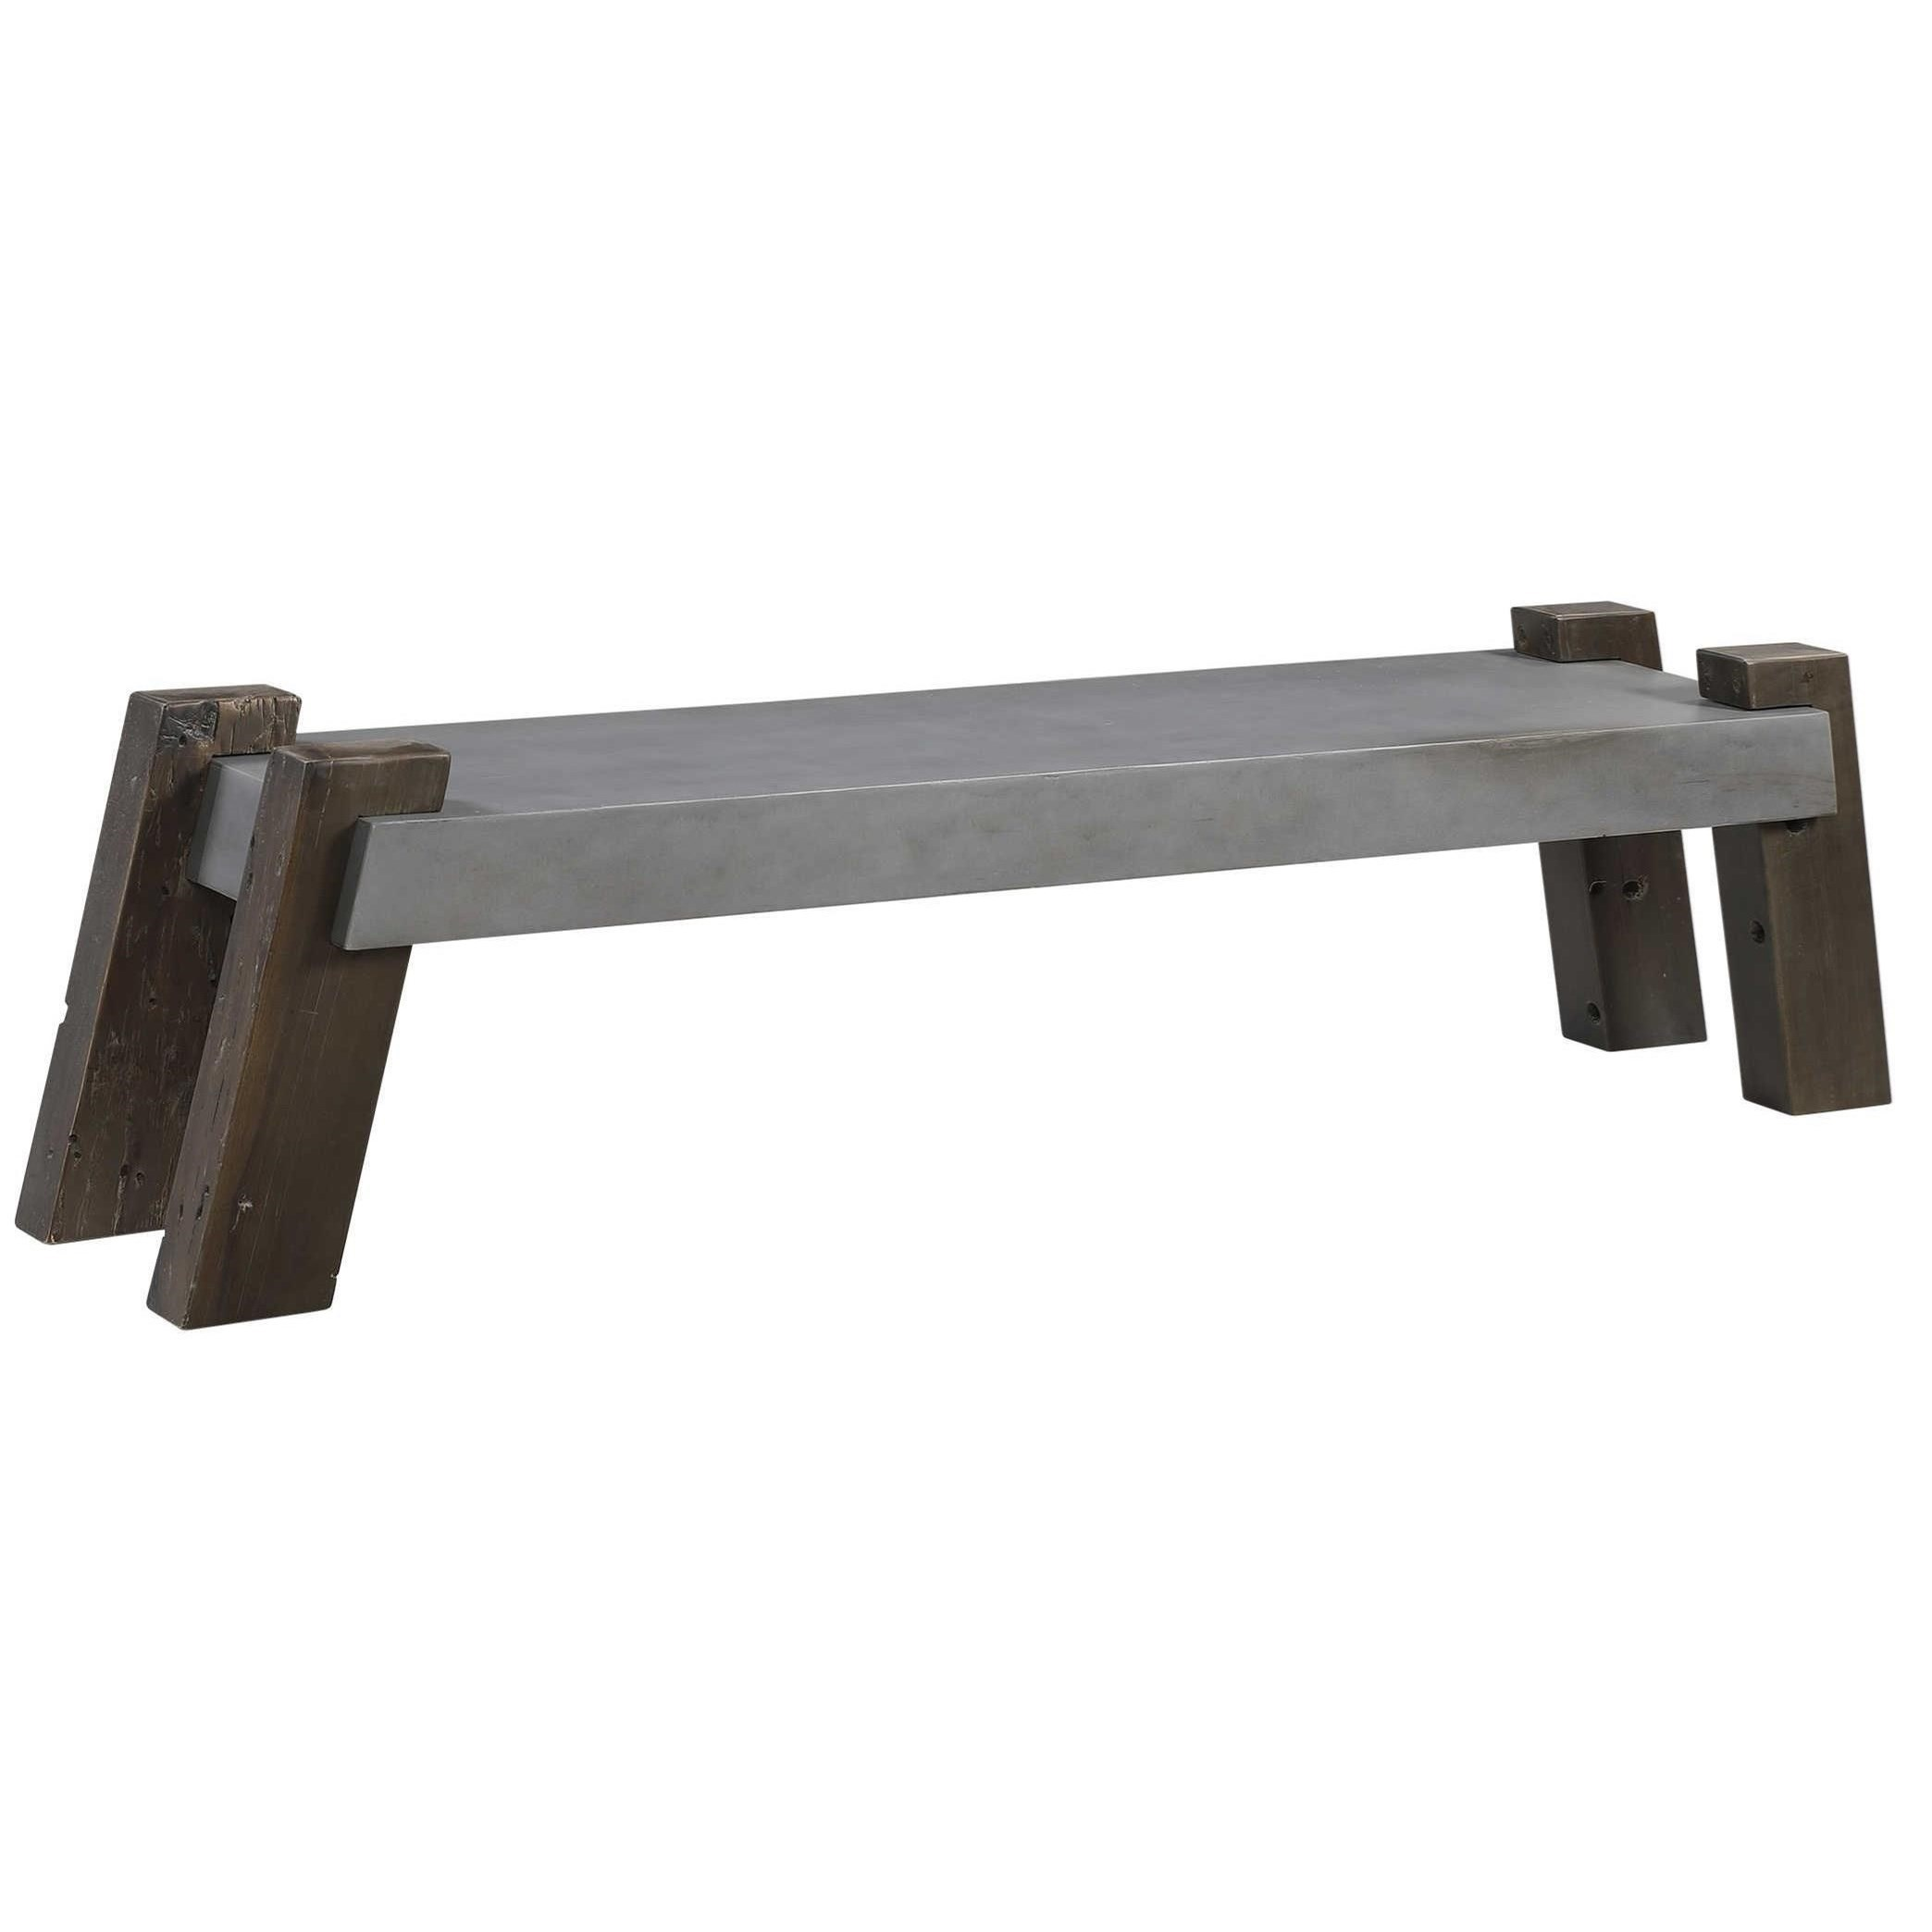 Accent Furniture - Benches Lavin Industrial Concrete Bench by Uttermost at Upper Room Home Furnishings